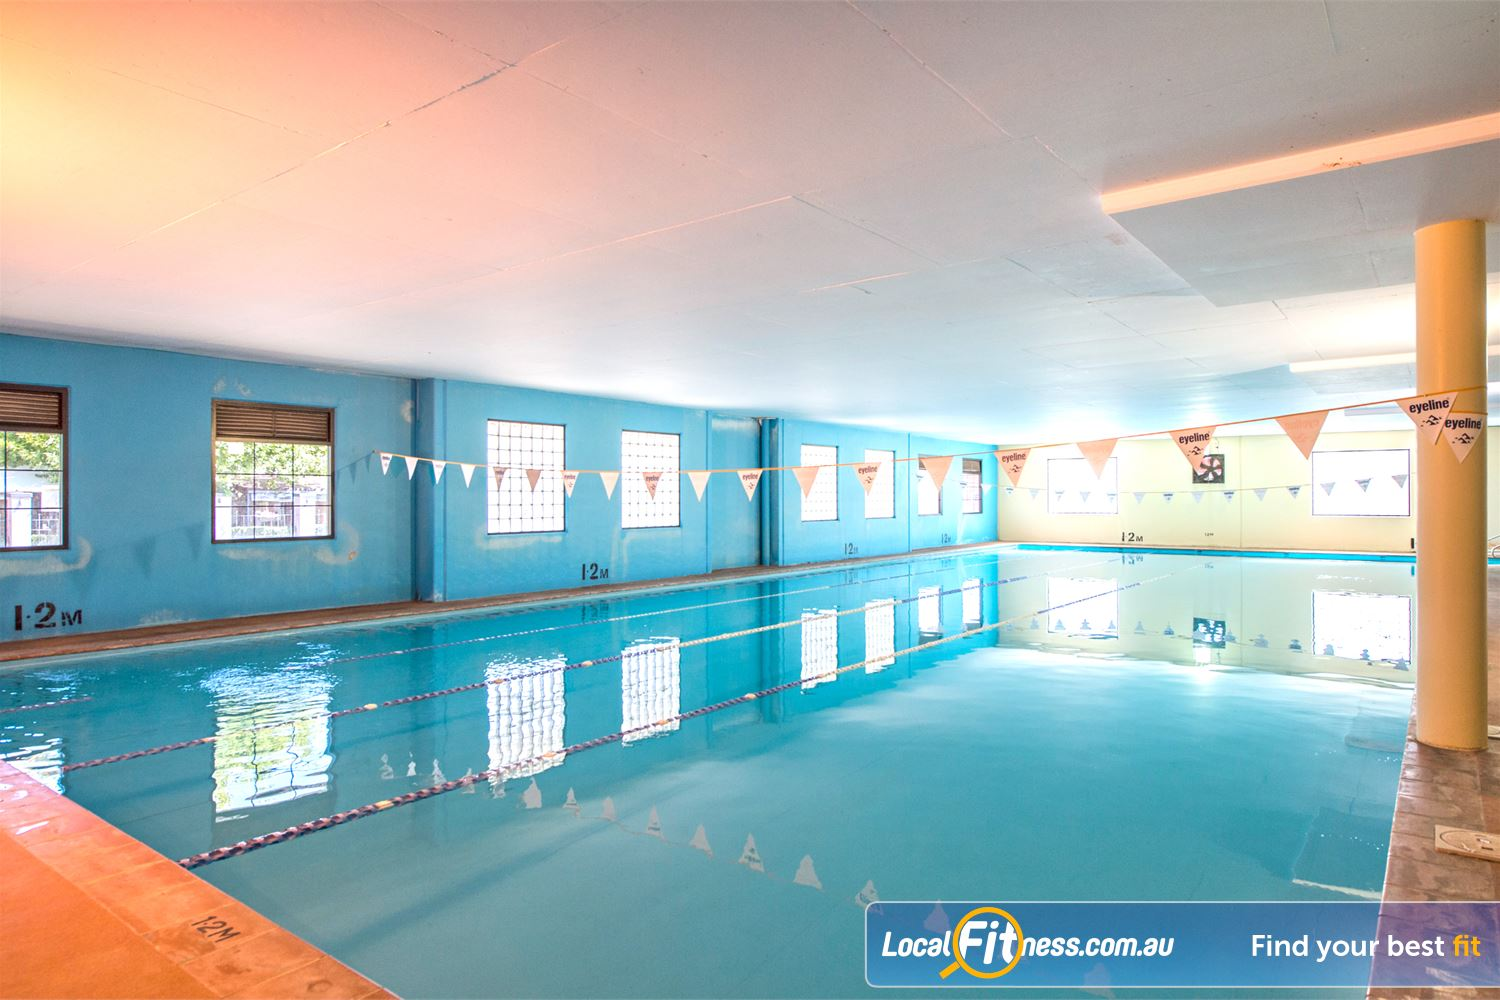 Goodlife Health Clubs Mount Lawley Goodlife provides an on-site indoor Mount Lawley swimming pool.